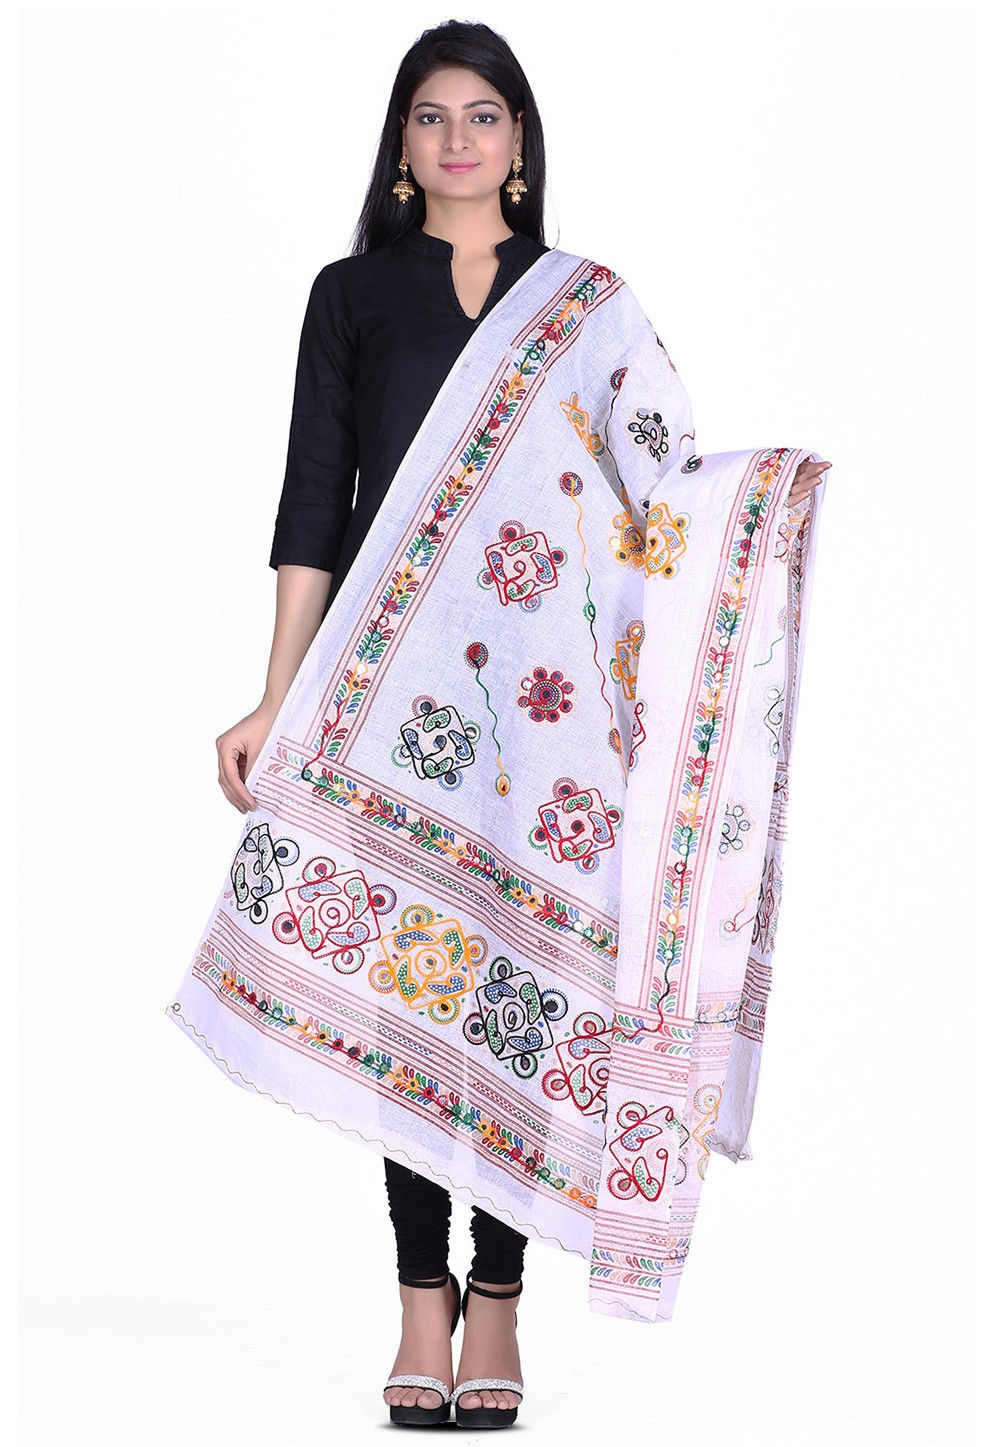 Kantha Embroidered Cotton Dupatta in White